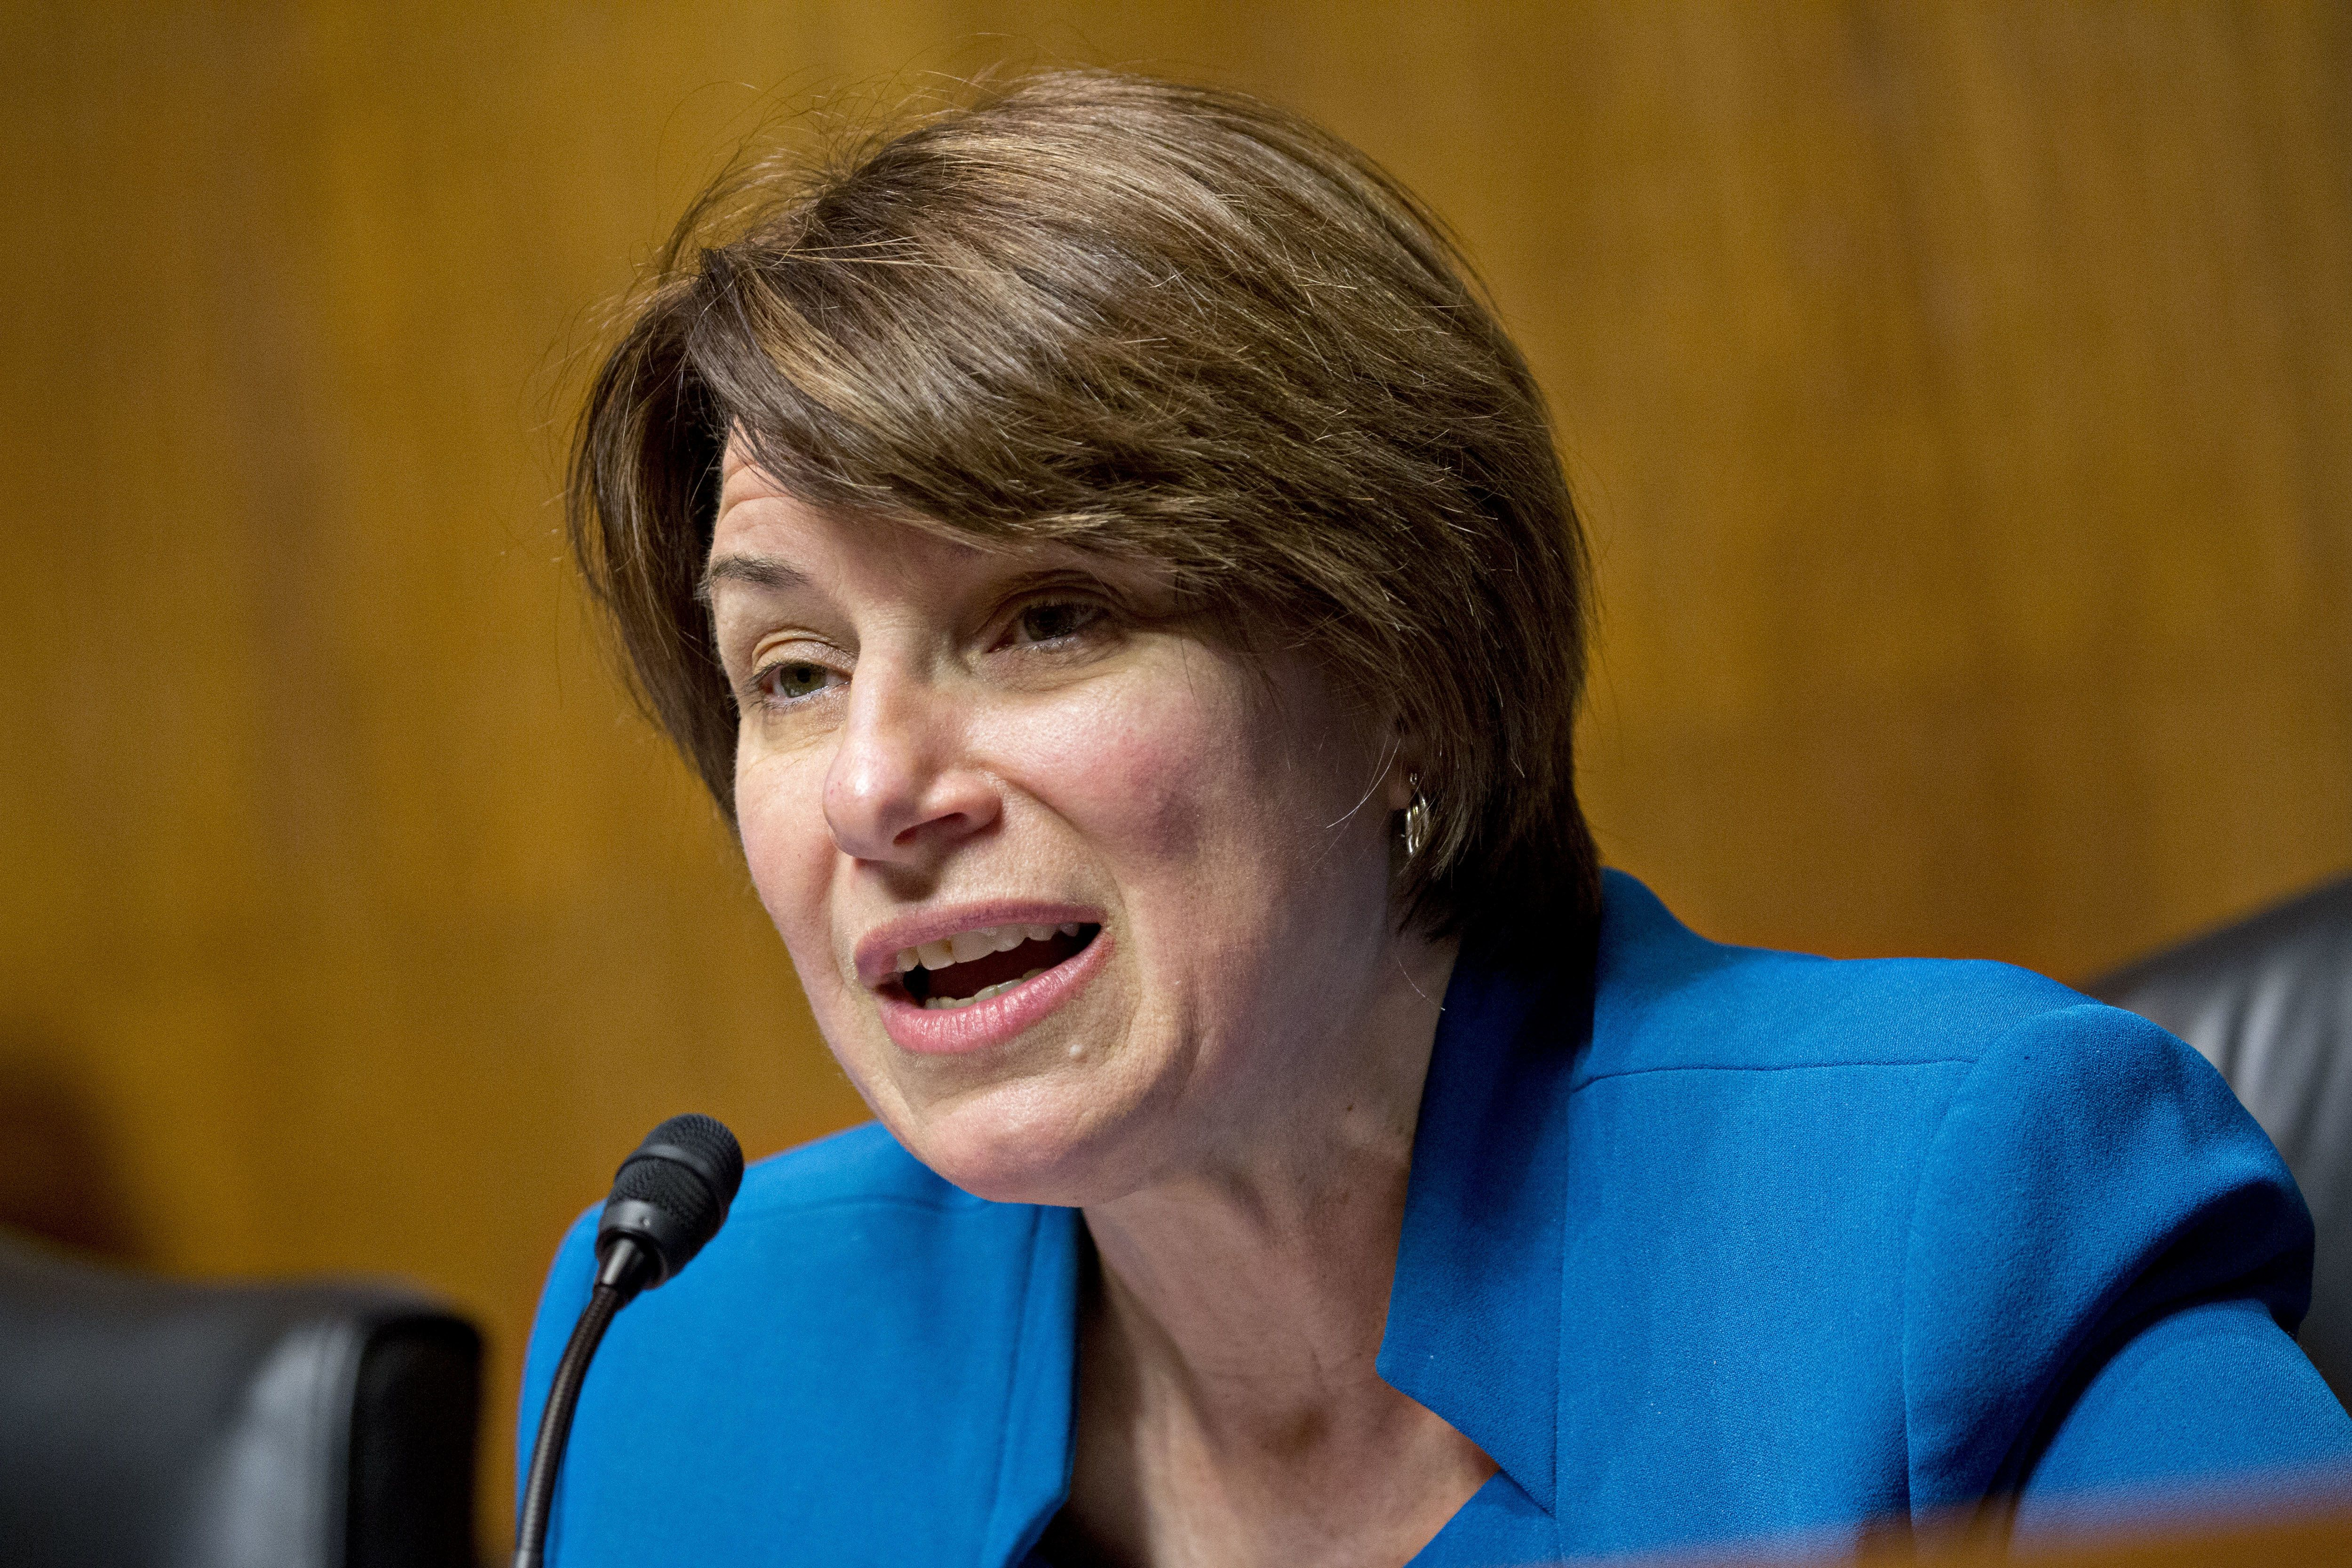 Senator Amy Klobuchar, a Democrat from Minnesota and ranking member of the Senate Judiciary Subcommittee on Antitrust, Competition Policy, and Consumer Rights, makes an opening statement during a hearing on the impact of the T-Mobile and Sprint transaction in Washington, D.C., U.S., on Wednesday, June 27, 2018. The T-Mobile US Inc. Chief Executive Officer told lawmakers his company's proposed purchase of Sprint Corp. will bring lower prices, while a former U.S. antitrust official said the deal poses dangers from less competition. Photographer: Andrew Harrer/Bloomberg via Getty Images